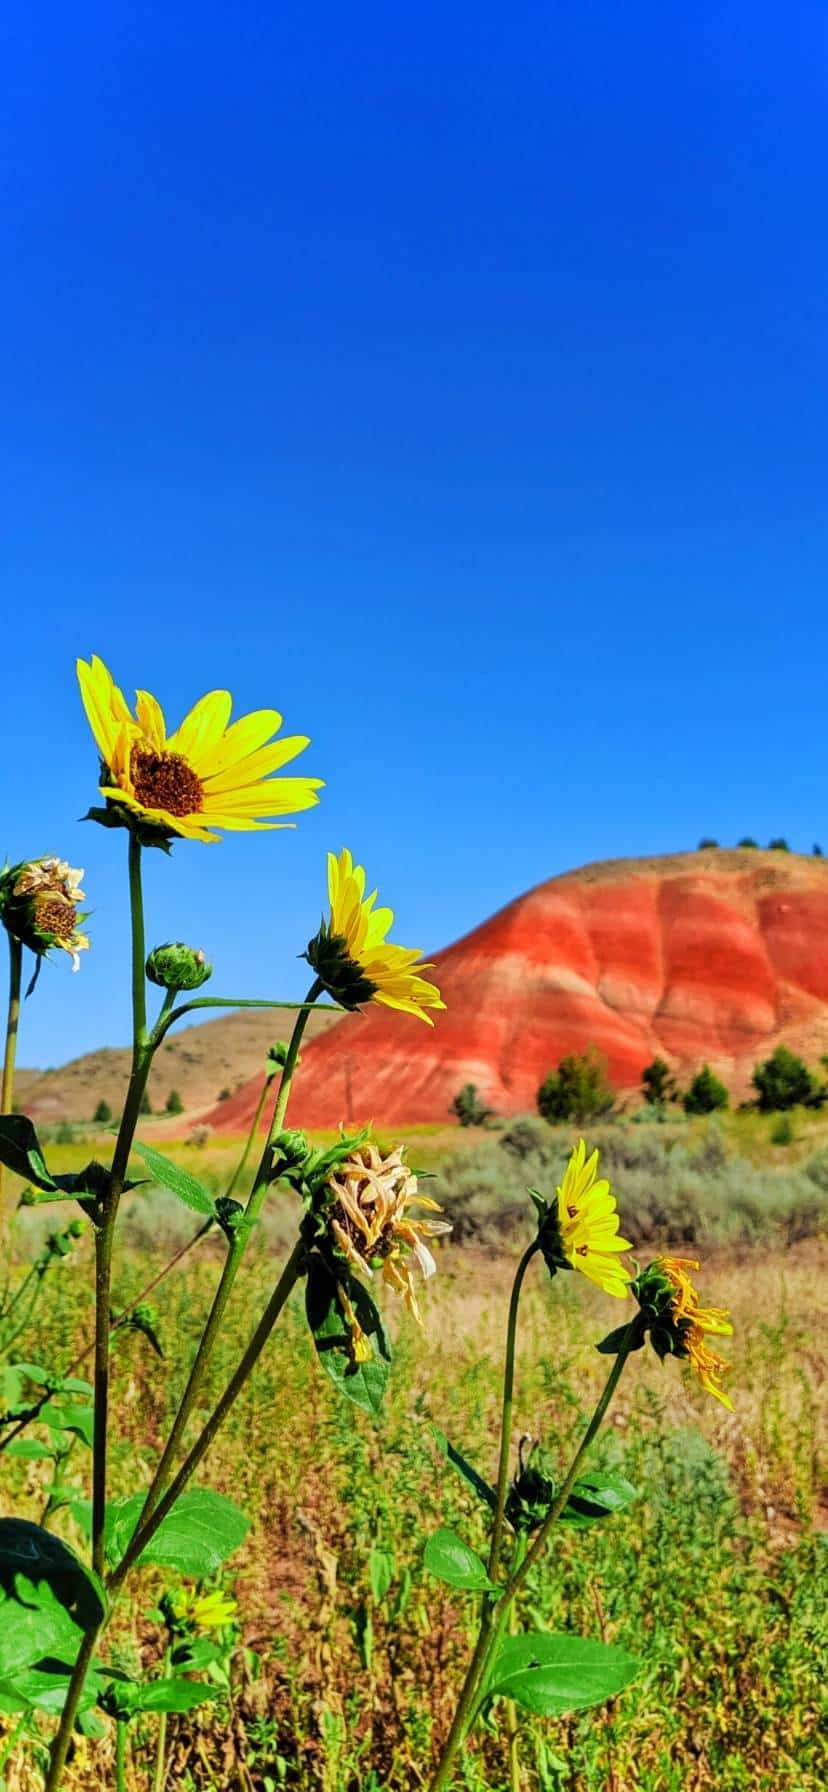 Sunflowers at Oregon's Painted Hills